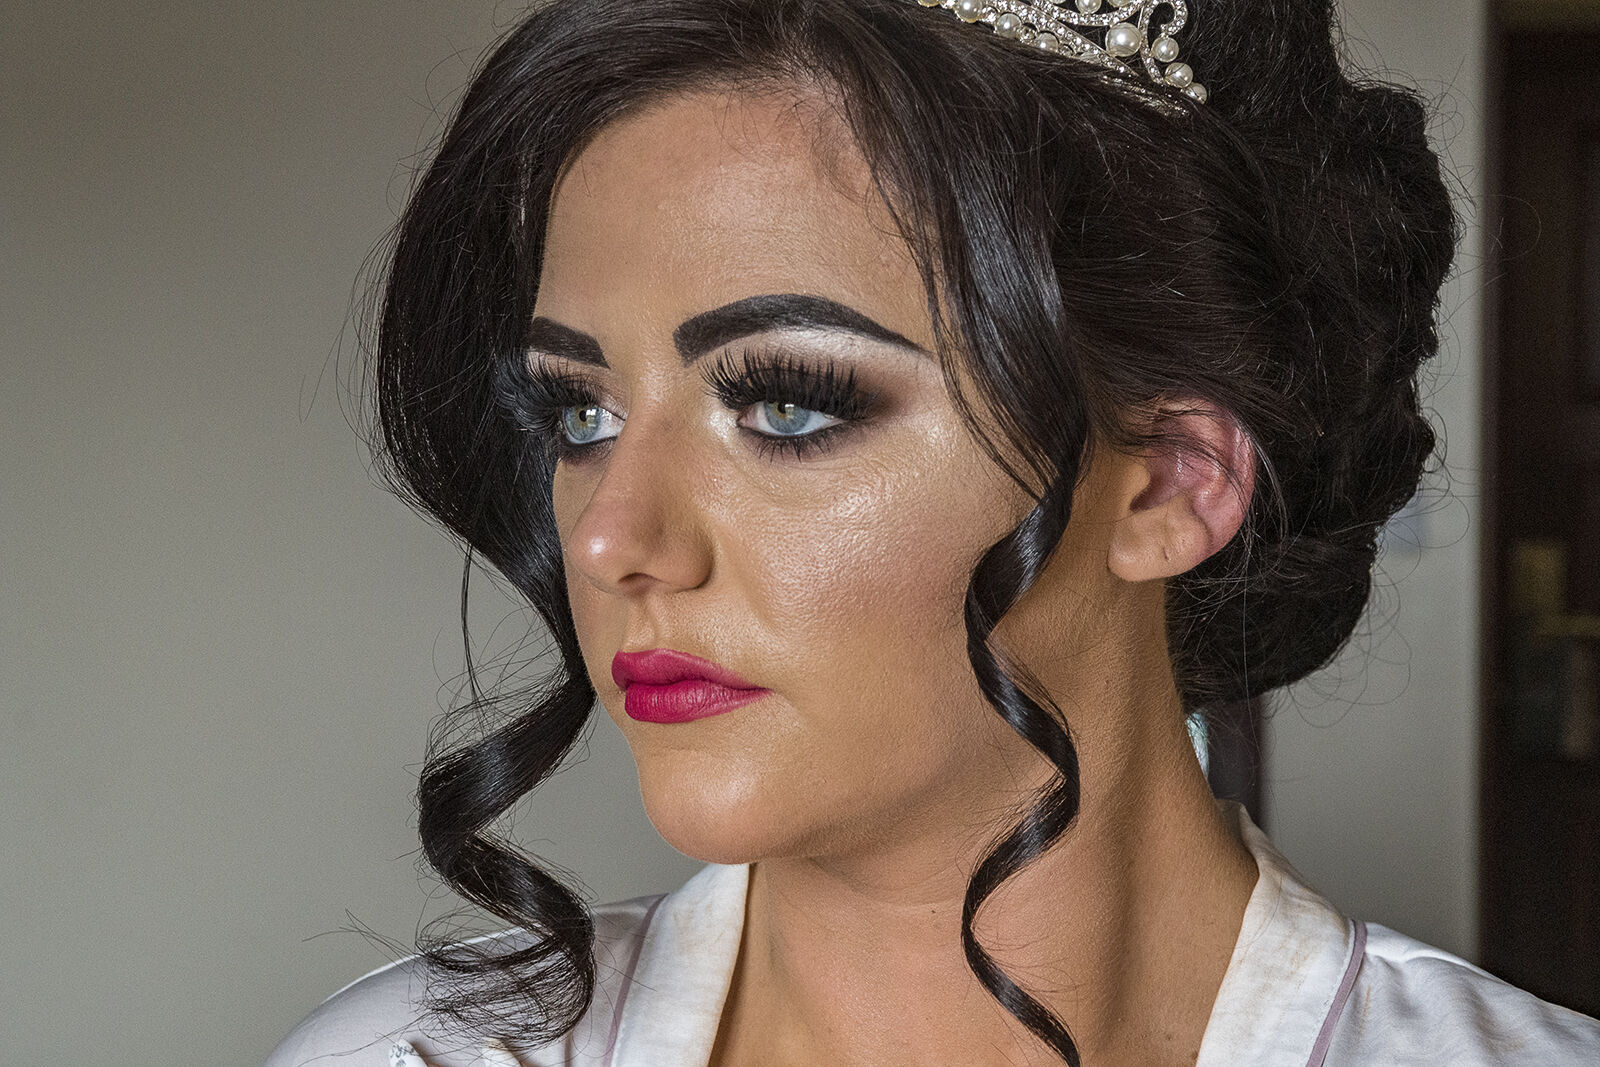 Delillah Just Before Her Wedding, Dublin, Ireland 2020